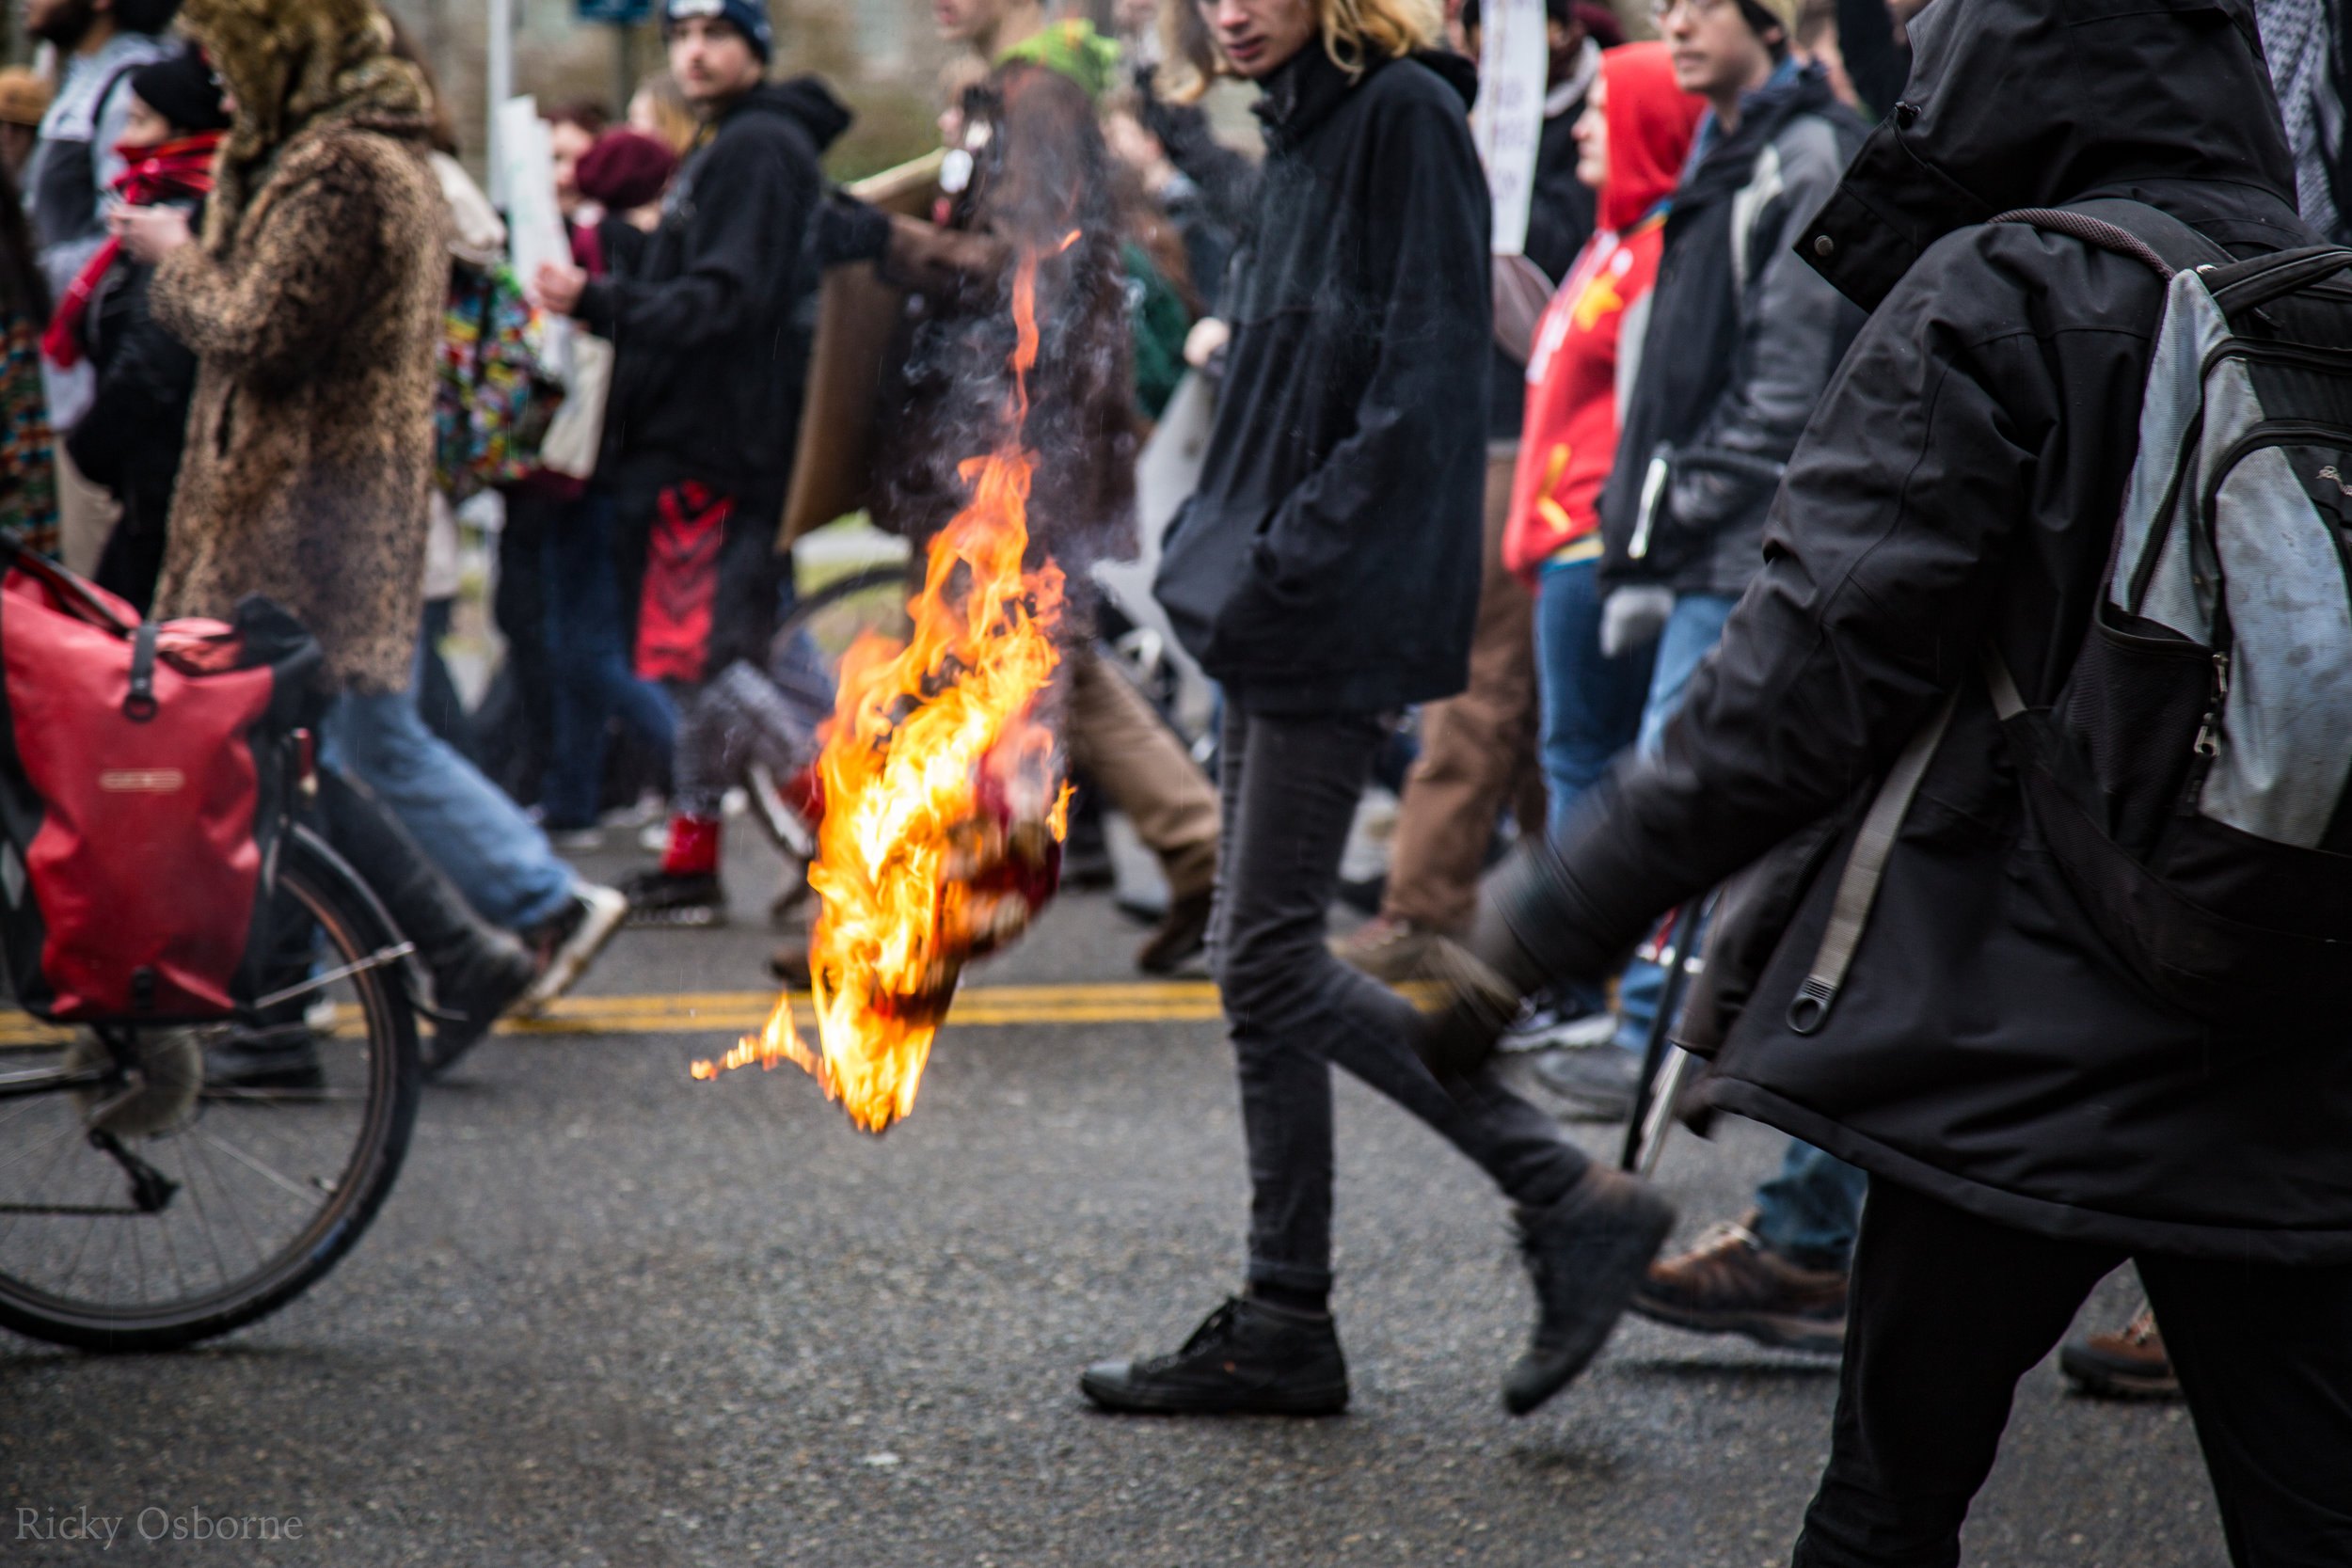 A fiery American flag floats through the air as protestors march.